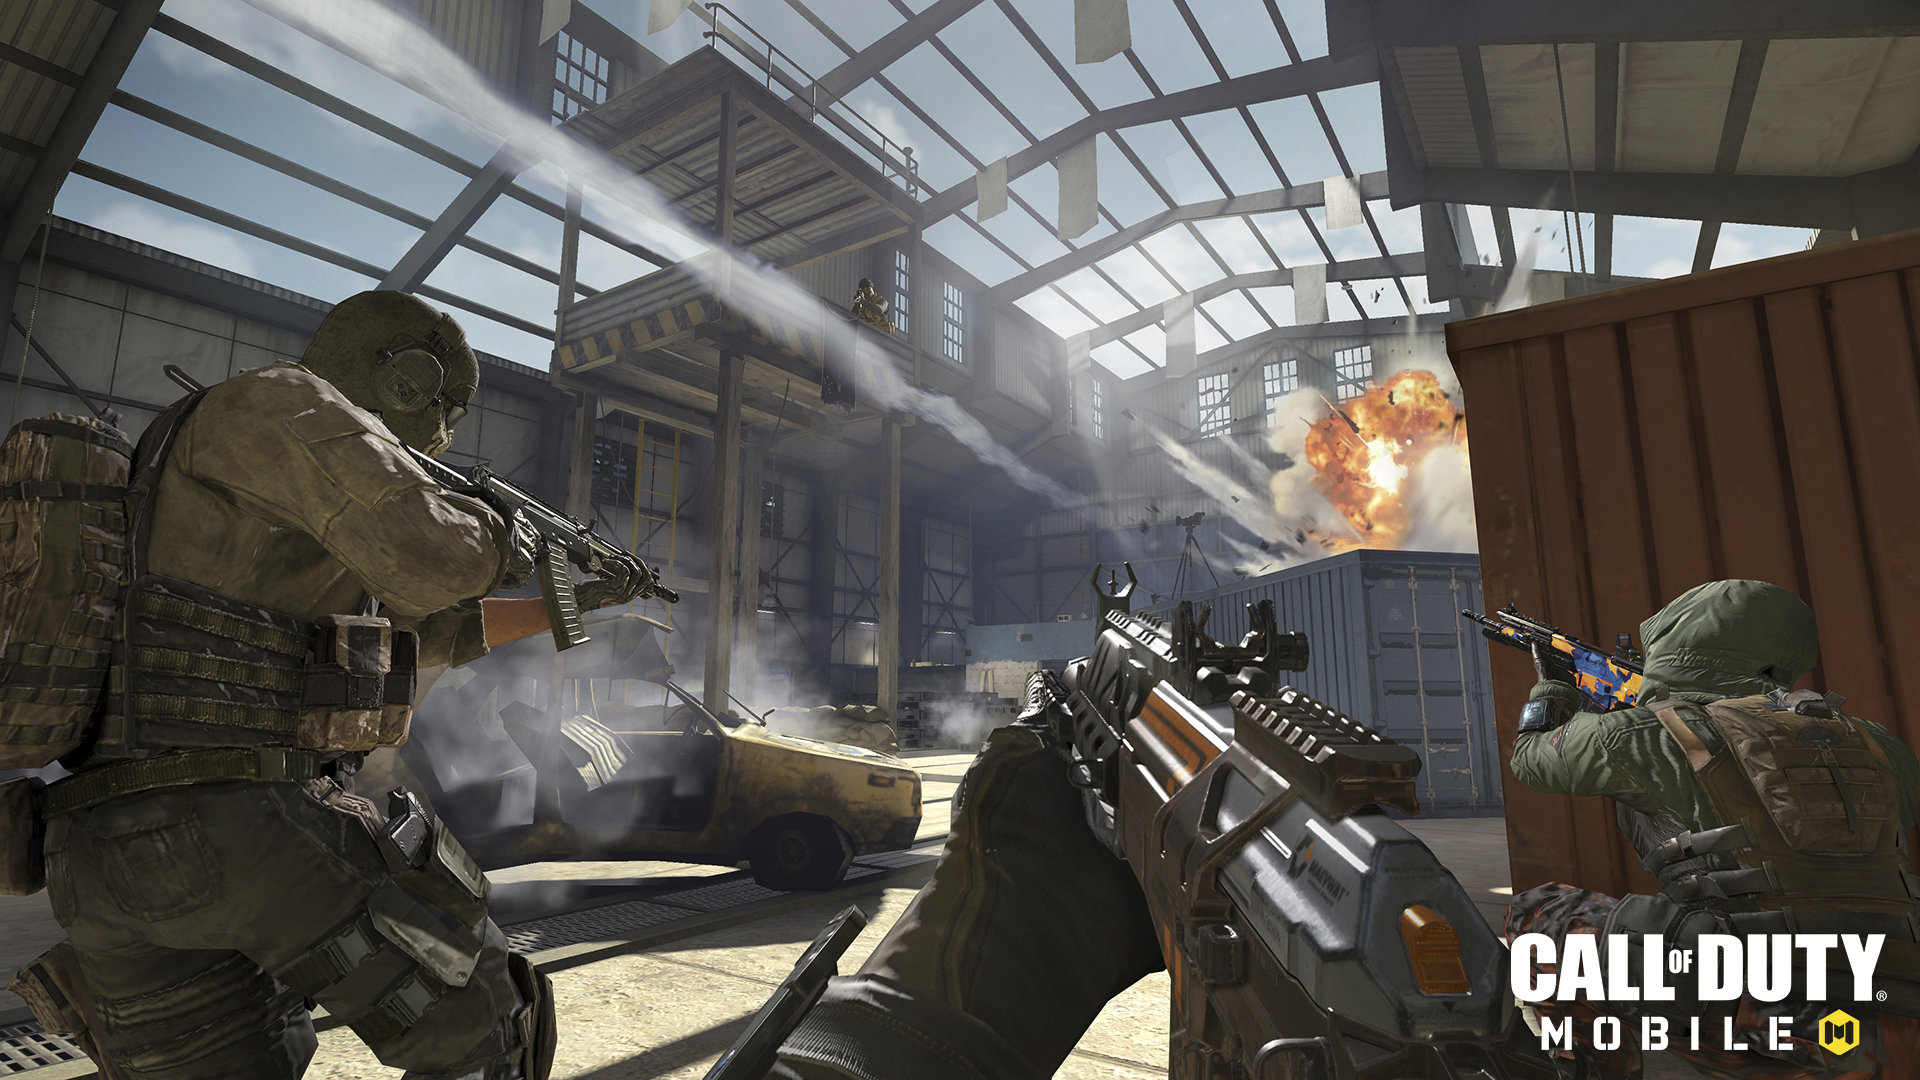 Sensor Tower Call Of Duty Mobile Already Achieves 20 Million